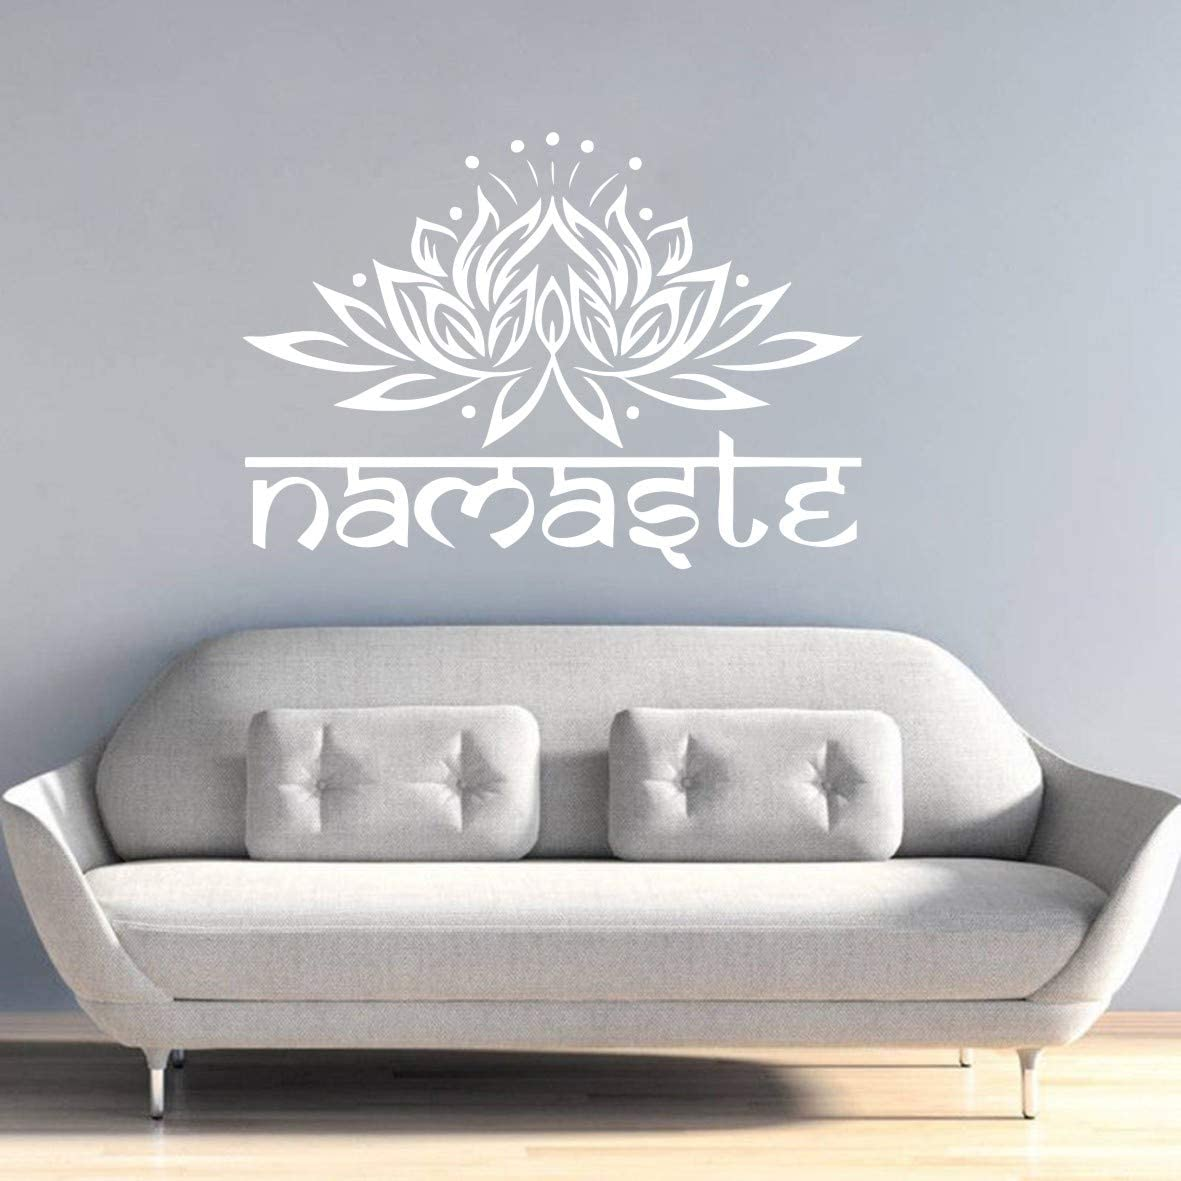 Amazon Com Home Decoration Lotus Flower Wall Sticker Yoga Studio Namaste Om Mandala Meditation Wall Decor Home Living Room Bedroom Wall Art Sticker Yoga Room Decor Mural Syy714 White Arts Crafts Sewing